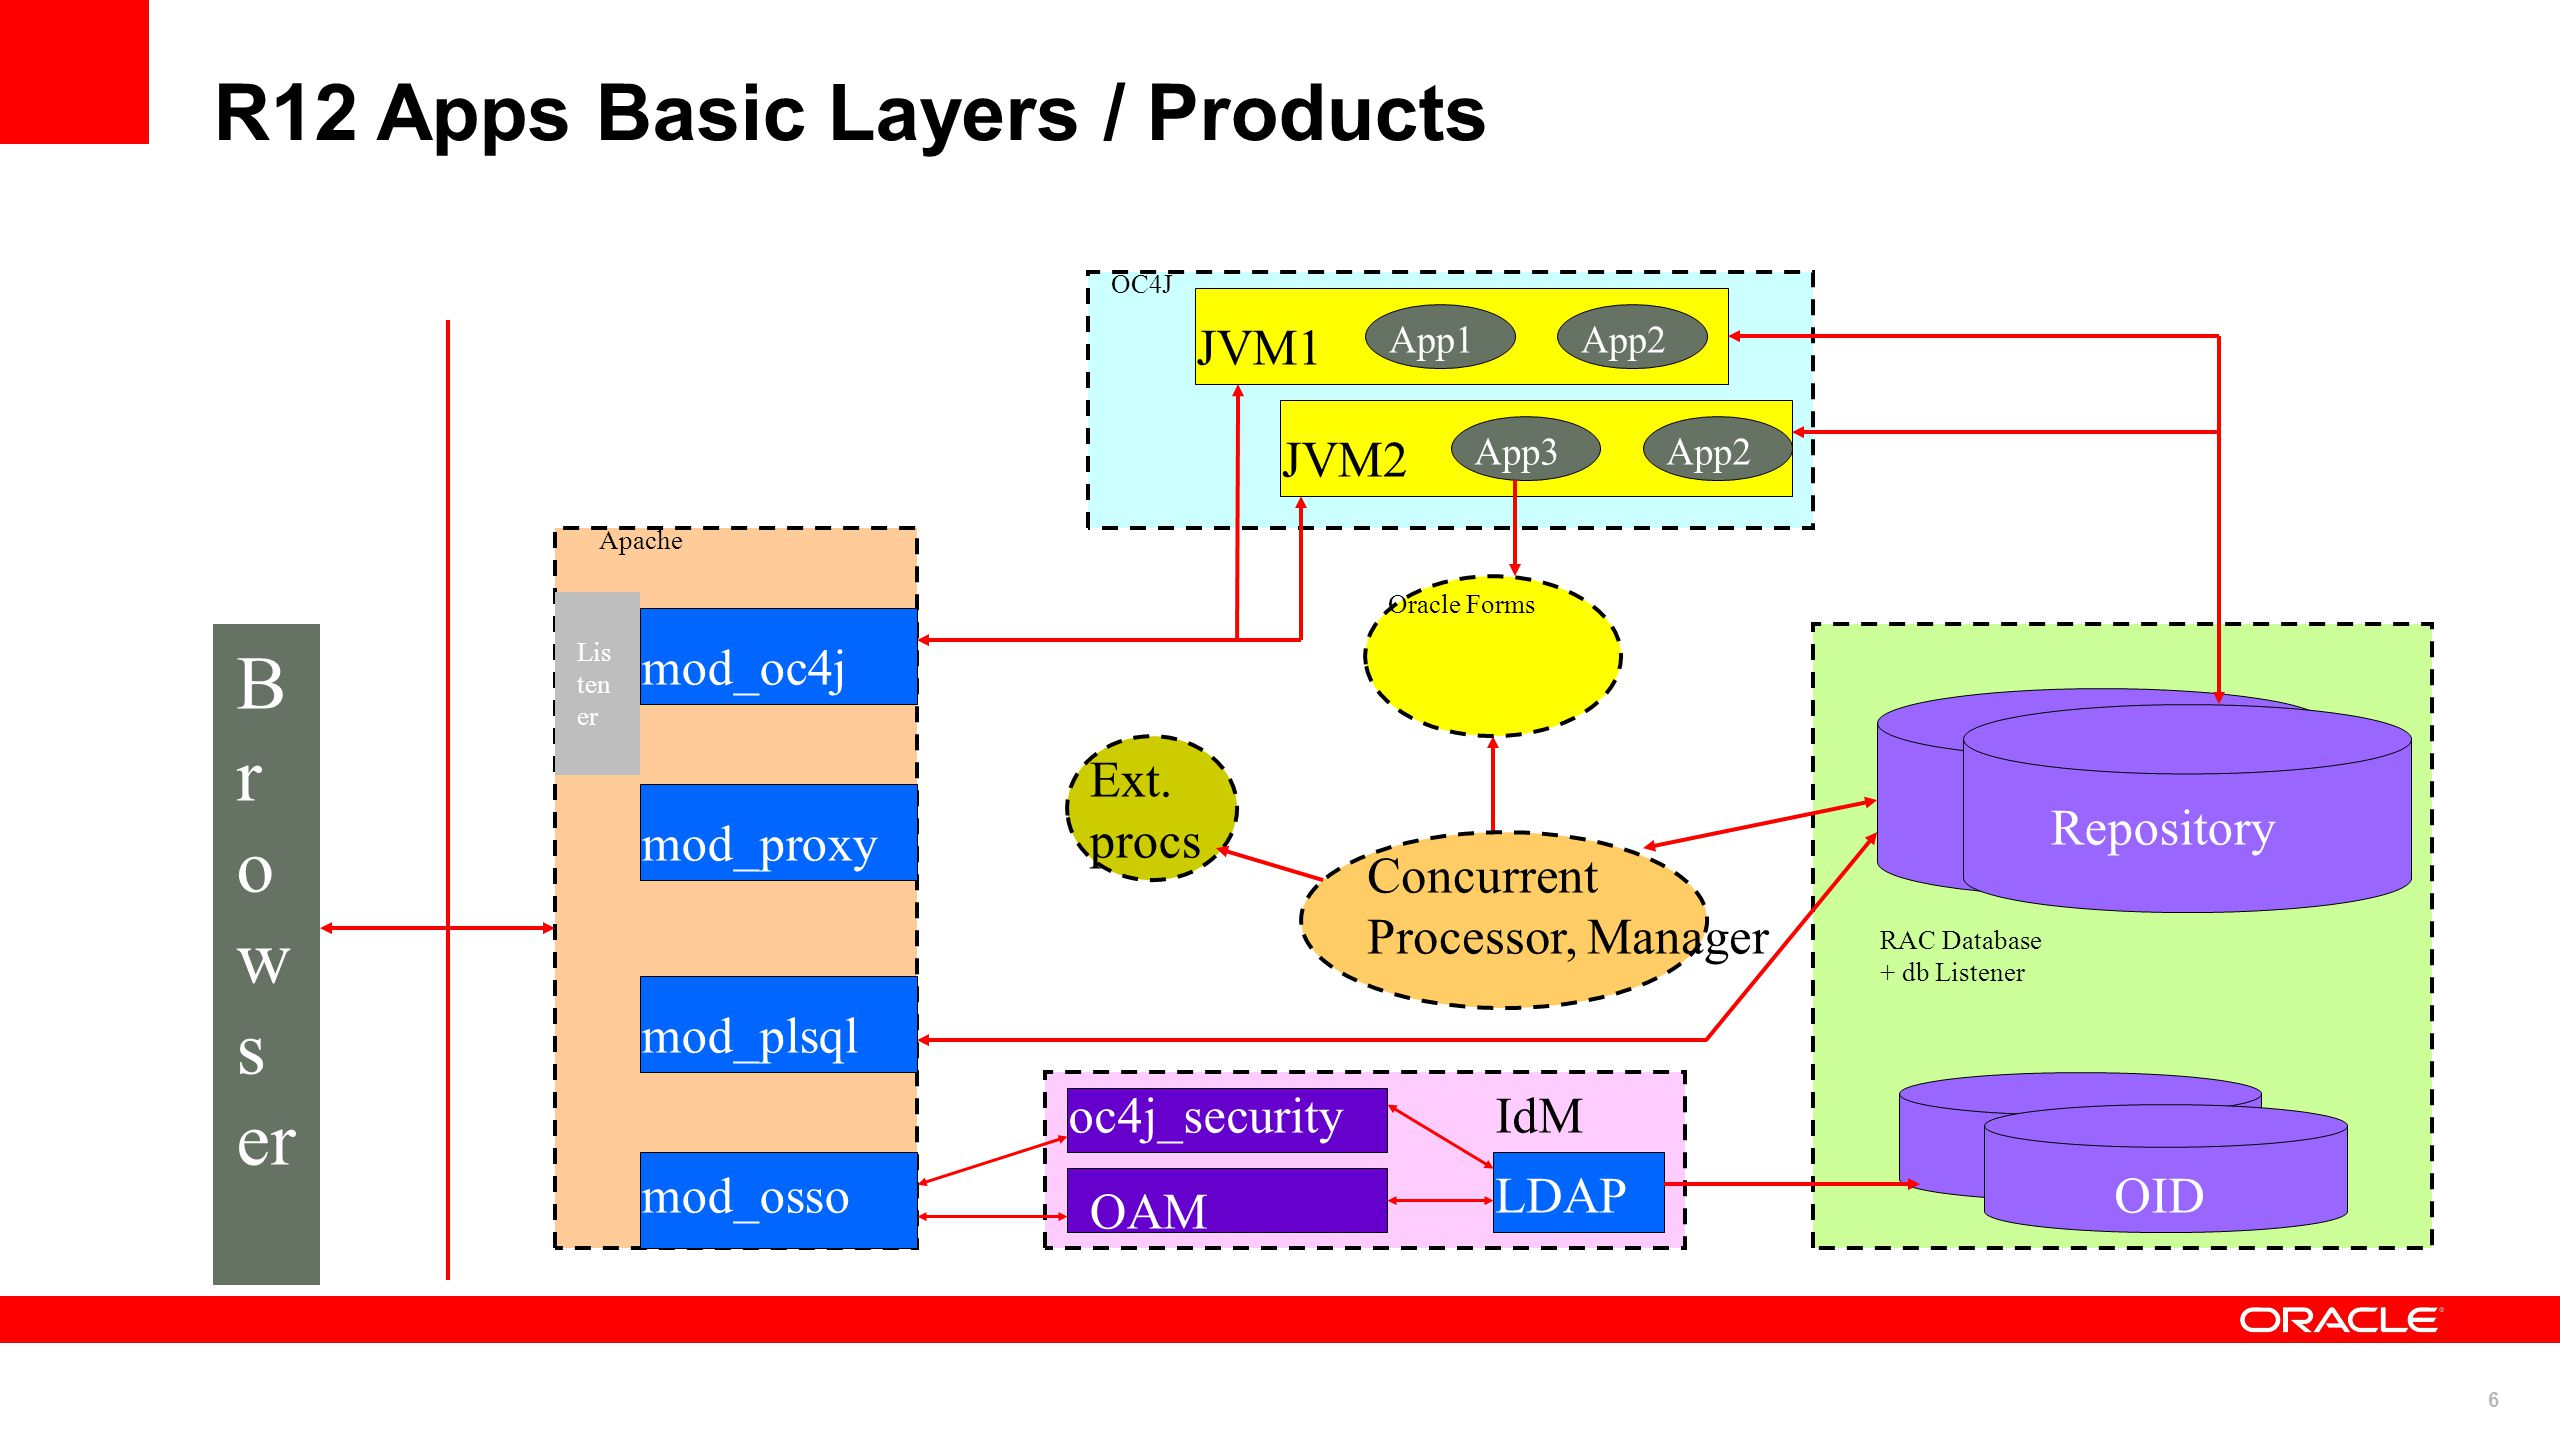 7 R12 Apps Basic Layers / Products